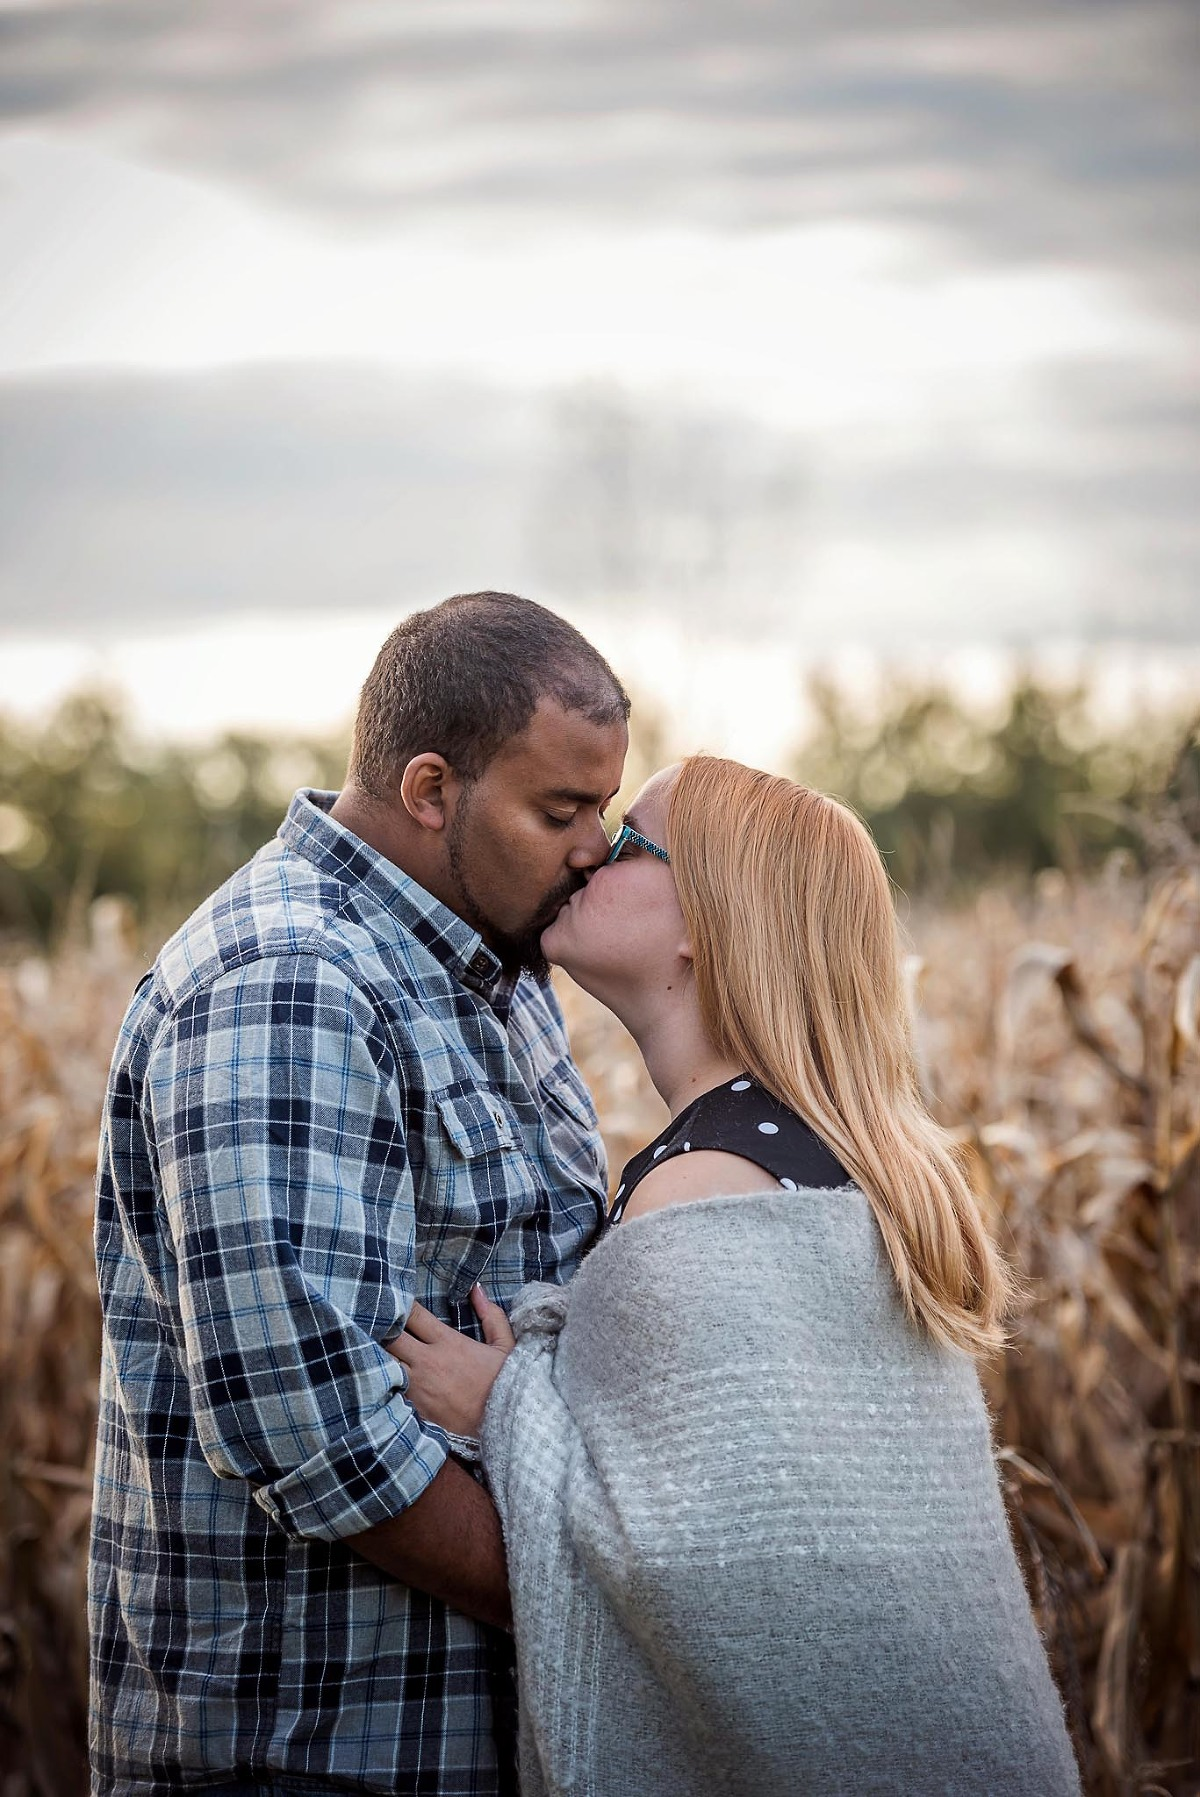 Engaged couple kiss near corn field during fall engagement session at Salomon Farm Park in Fort Wayne, Indiana